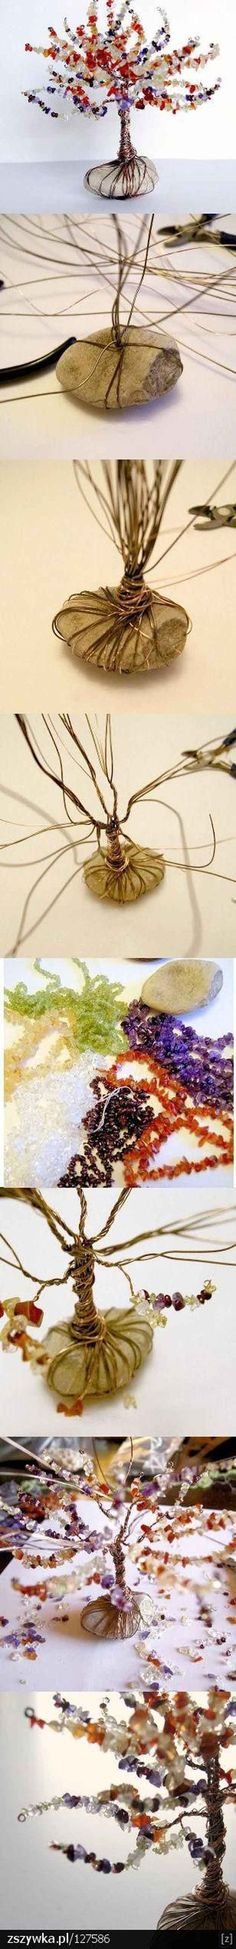 Fun DIY Tree of LIfe Decoration and Ideas | DIY Wire Tree by DIY Ready at http://diyready.com/12-diy-tree-of-life-ideas/: